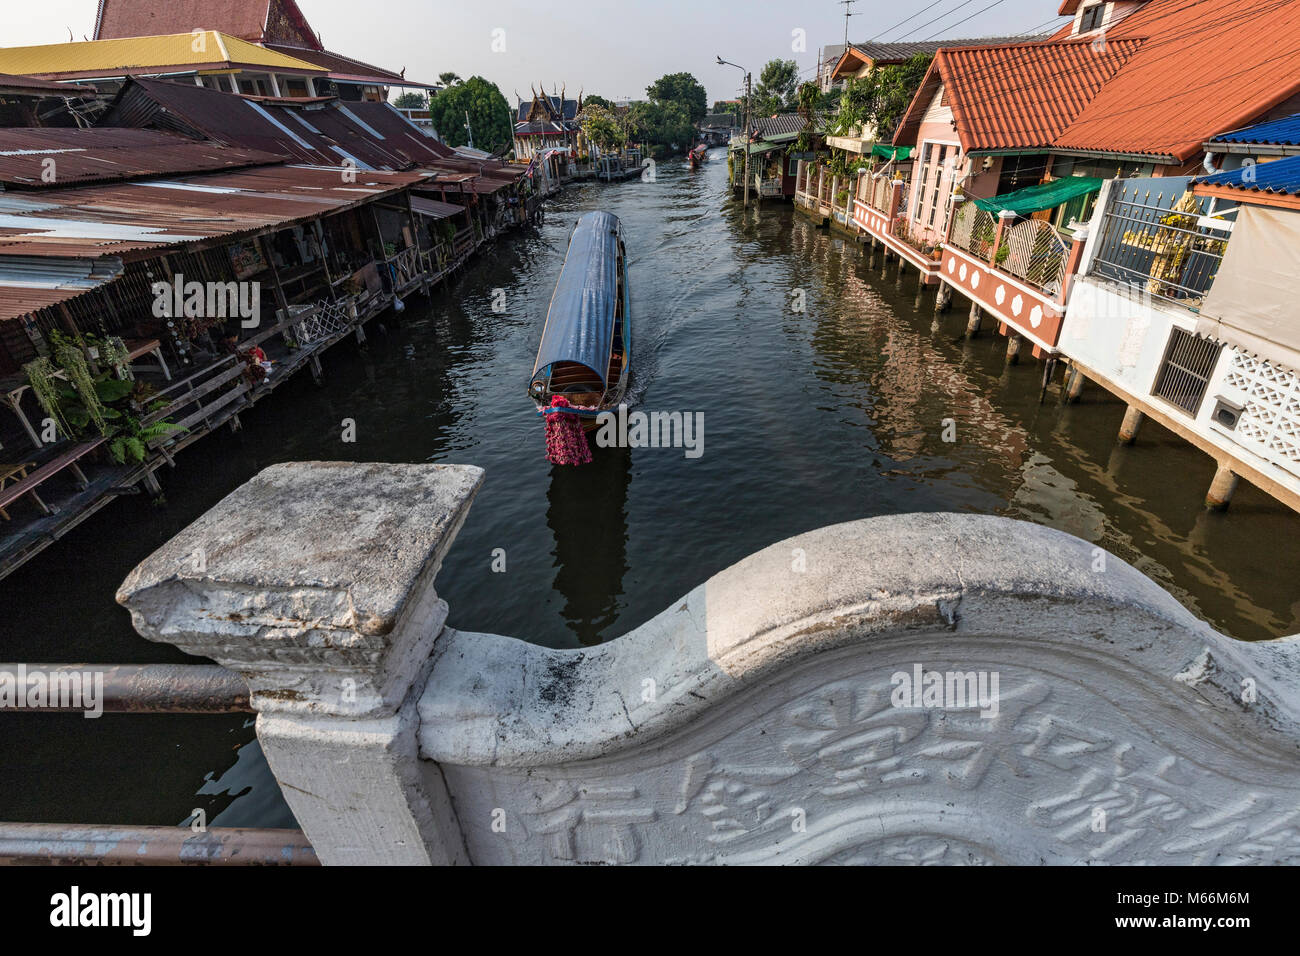 Bangkok Khlongs and canals - A khlong also commonly spelled Klong is the Thai word for a canal. These canals are - Stock Image